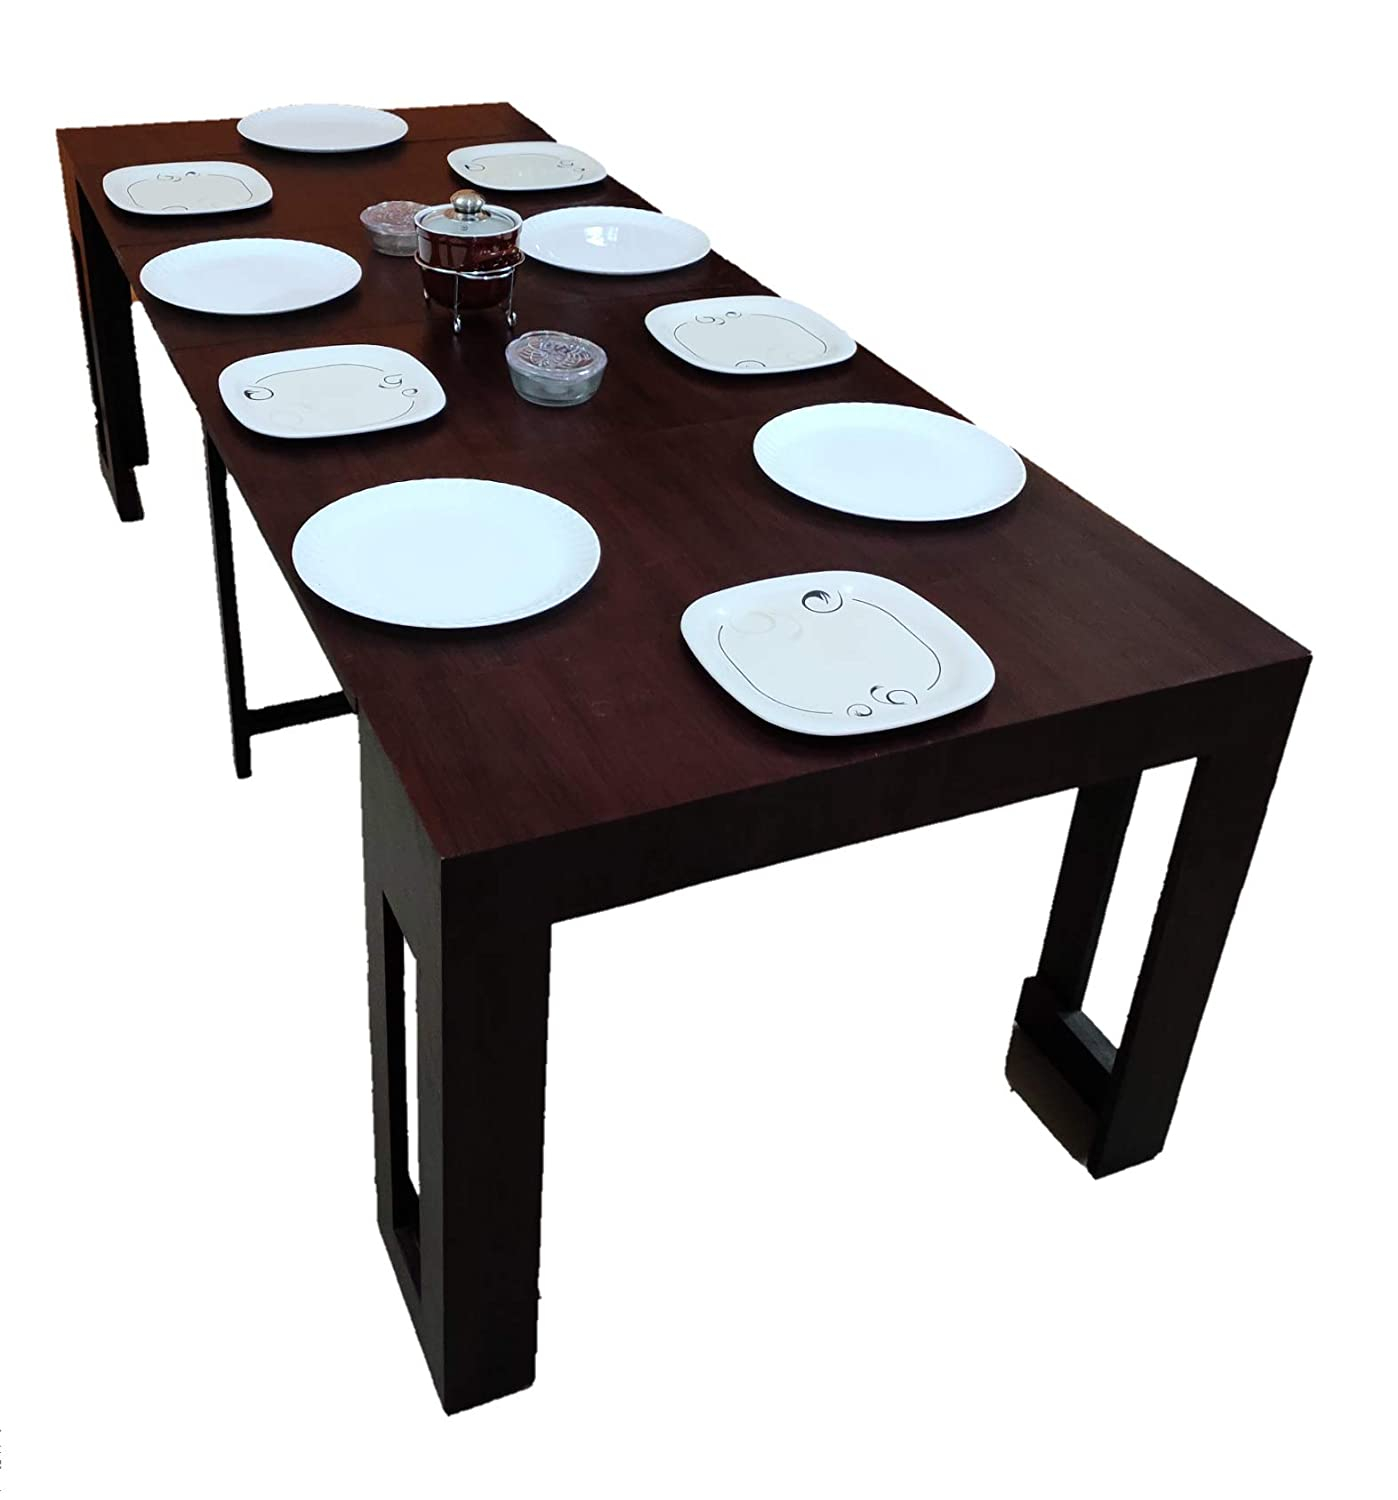 Gloryfolding Folding Dining Tables Expanding 4 6 8 To 10 Seater Console To Dining Space Saving For Home Kitchen Restaurant Office Use In India Amazon In Home Kitchen